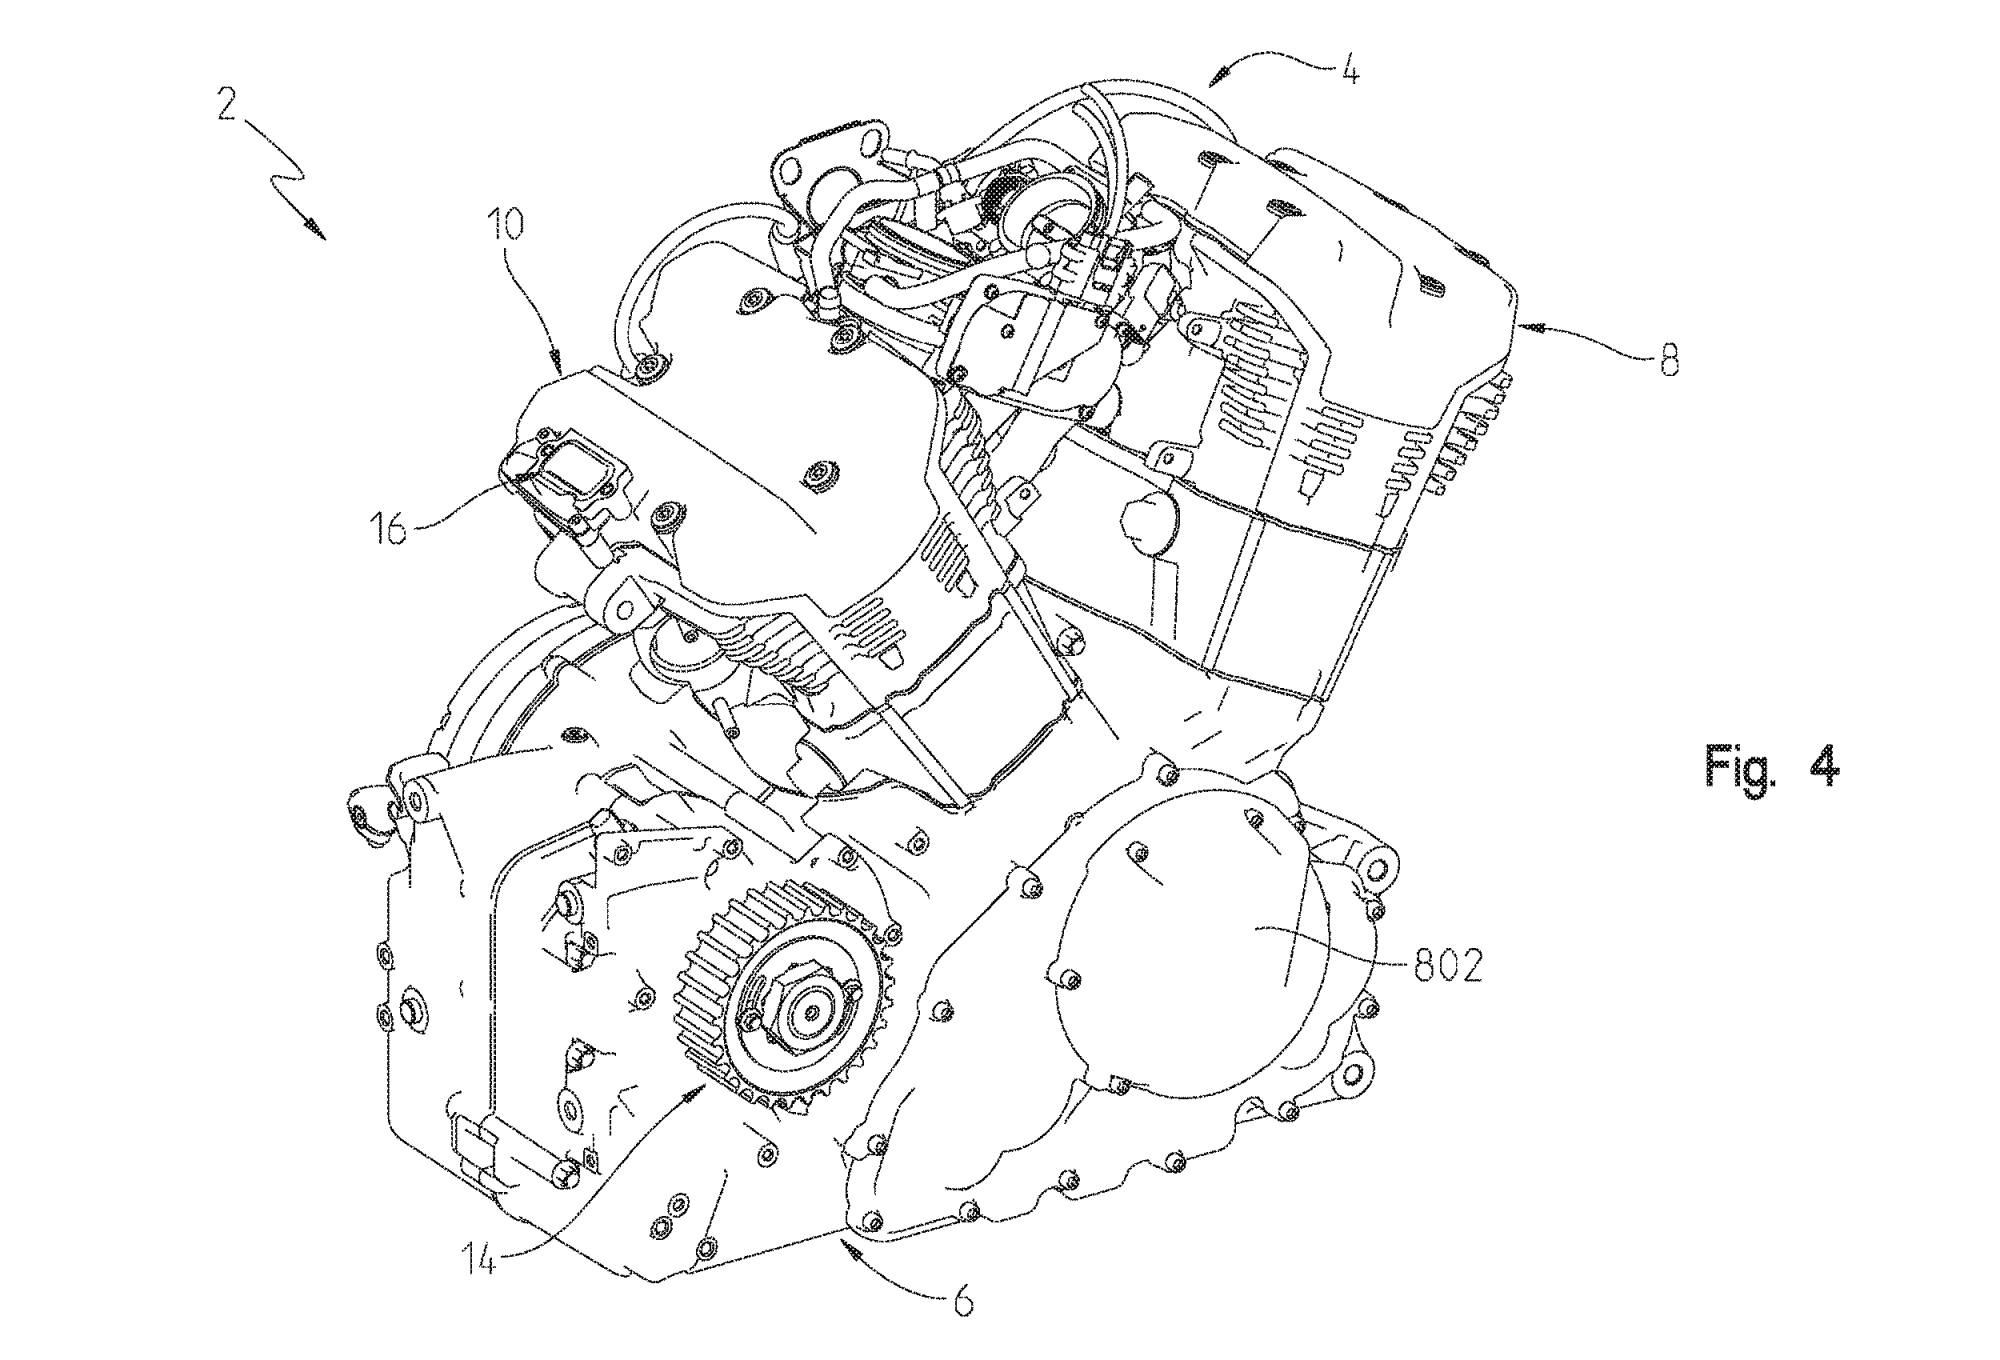 hight resolution of victory engine diagram wiring diagram centre briggs and stratton v twin engine diagram fixed fairing